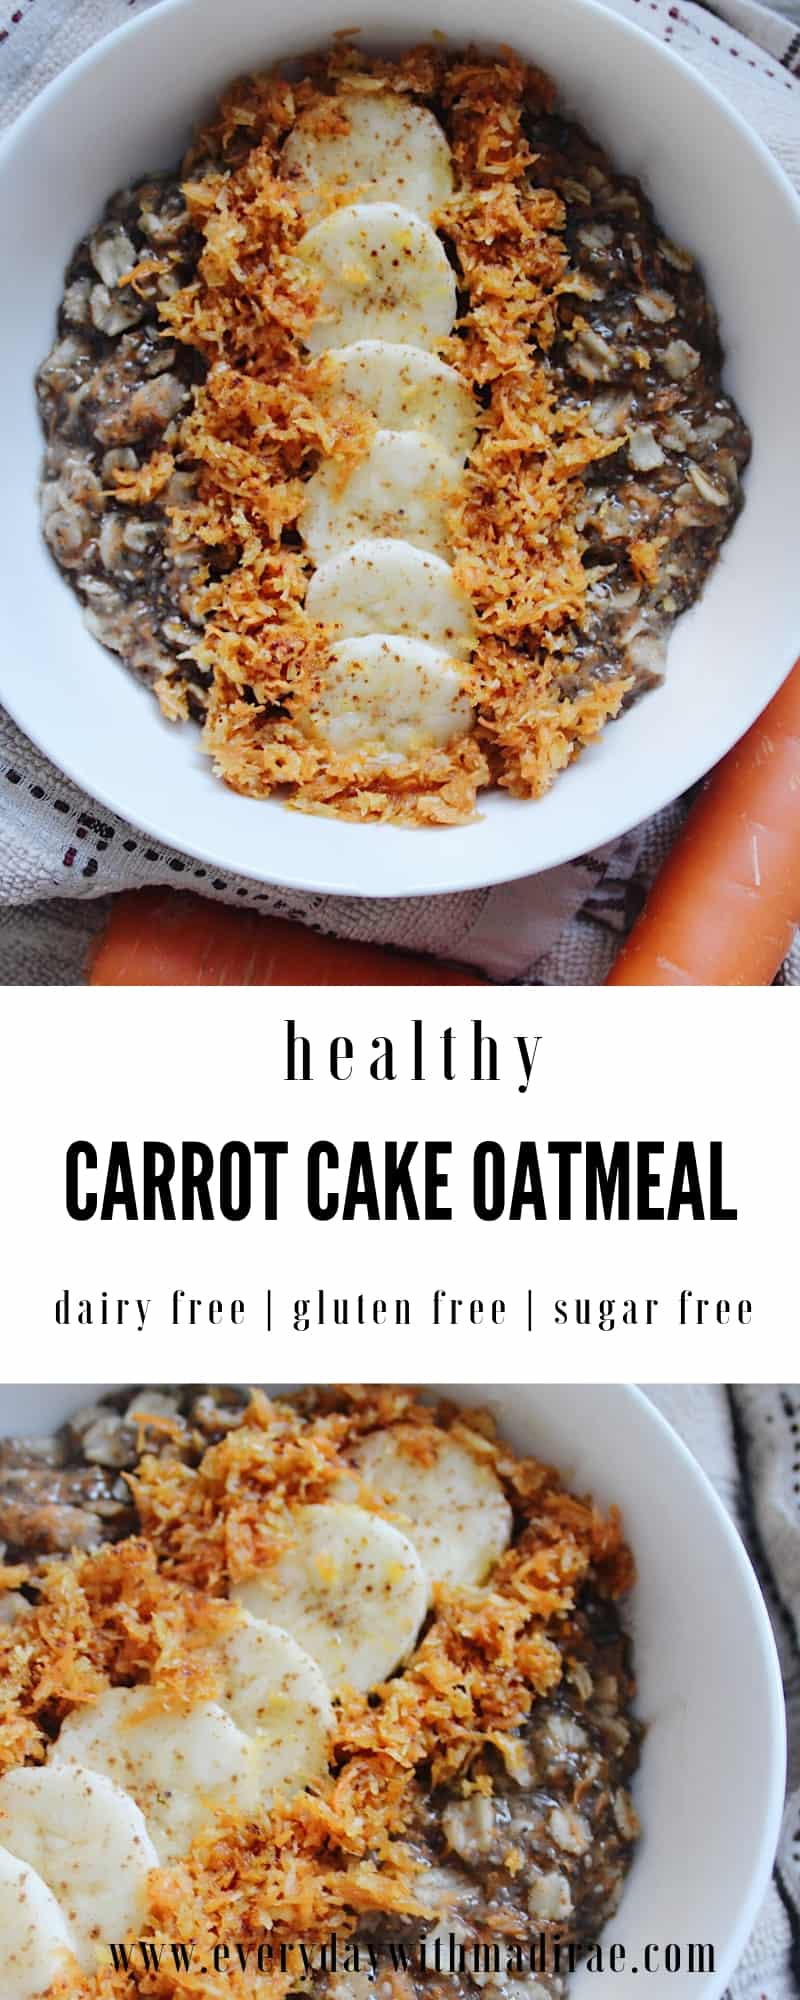 This healthy carrot cake oatmeal blends carrot cake flavor with superfoods, fiber, nutrients, & protein, thanks to Vital Proteins. Gluten & dairy free.